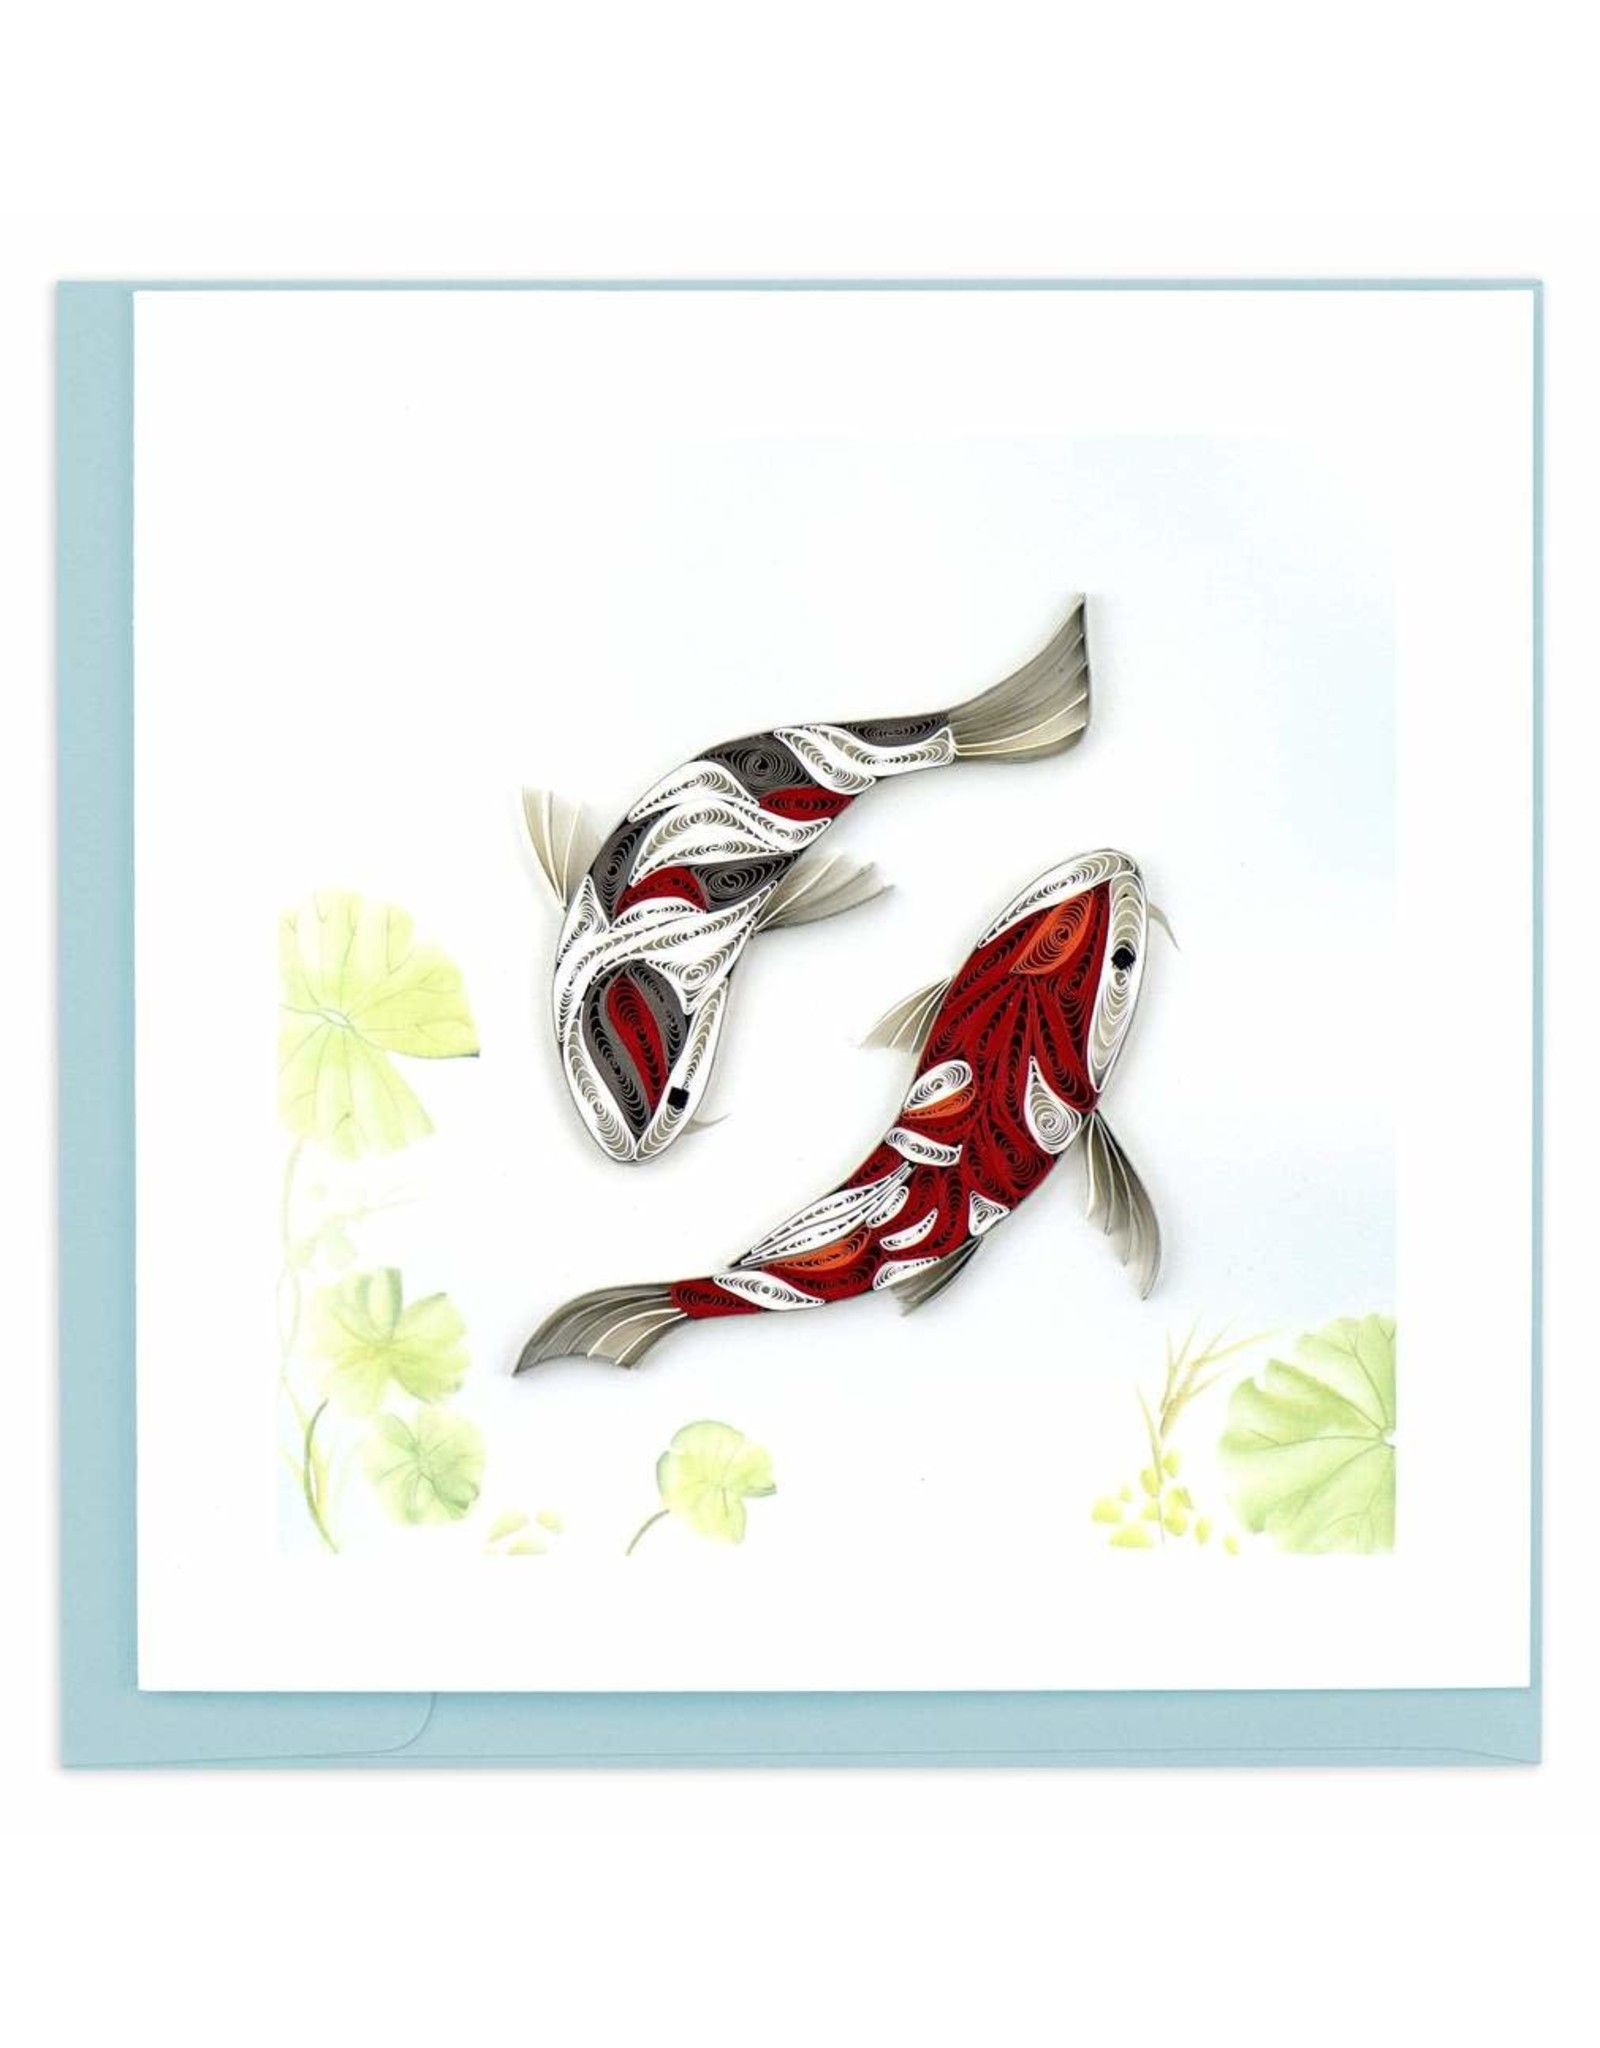 Two Koi Fish Quill Card, Vietnam